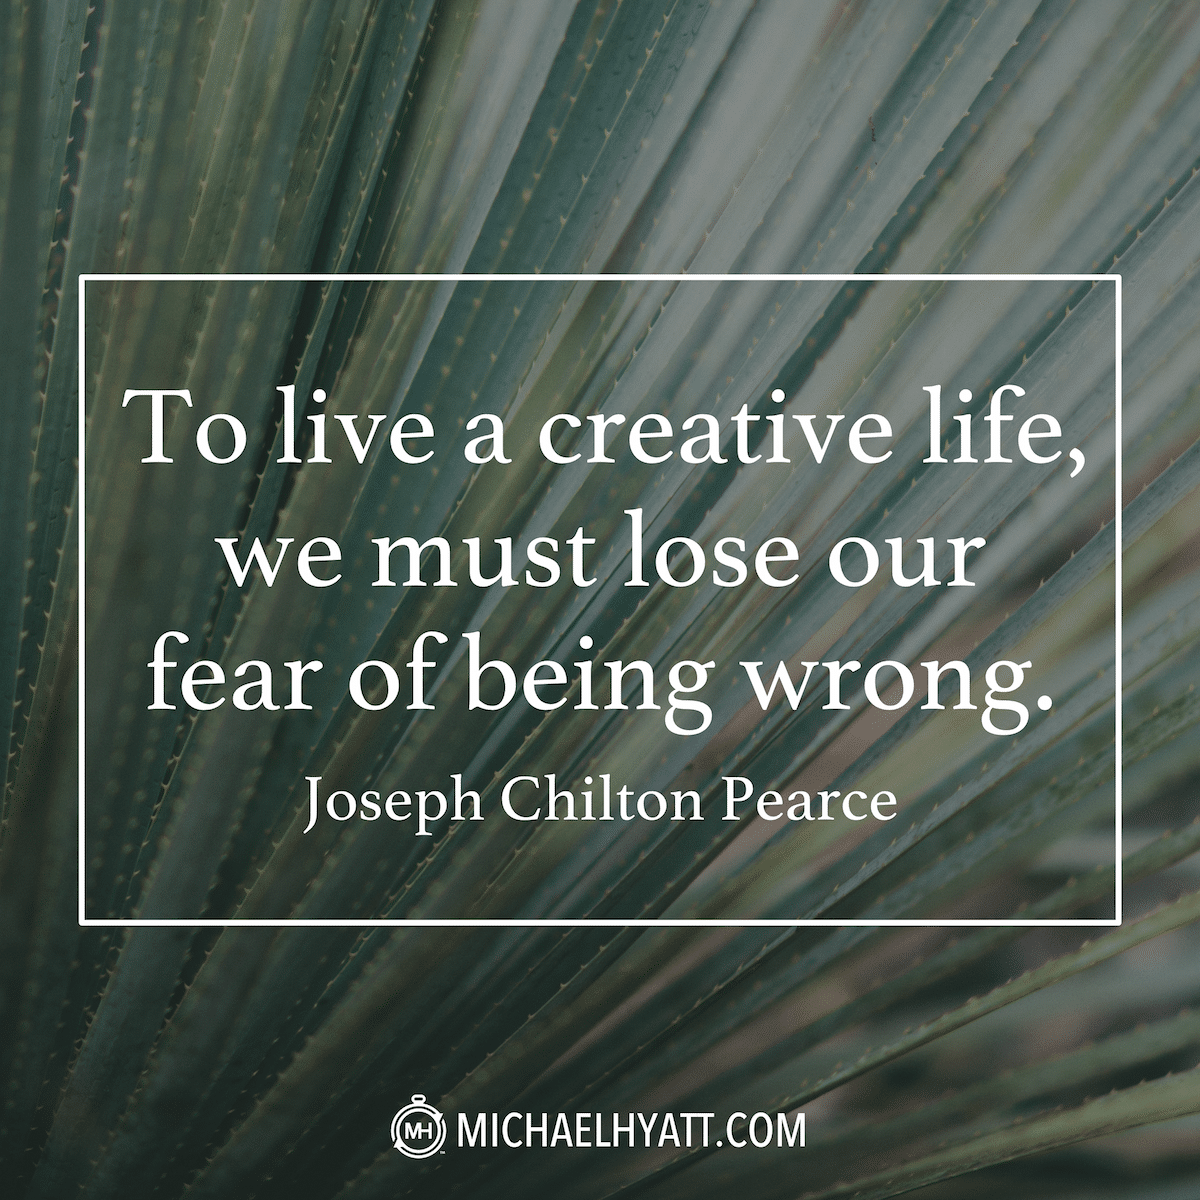 To live a creative life we must lose our fear of being wrong to live a creative life we must lose our fear of being wrong joseph chilton pearce altavistaventures Image collections